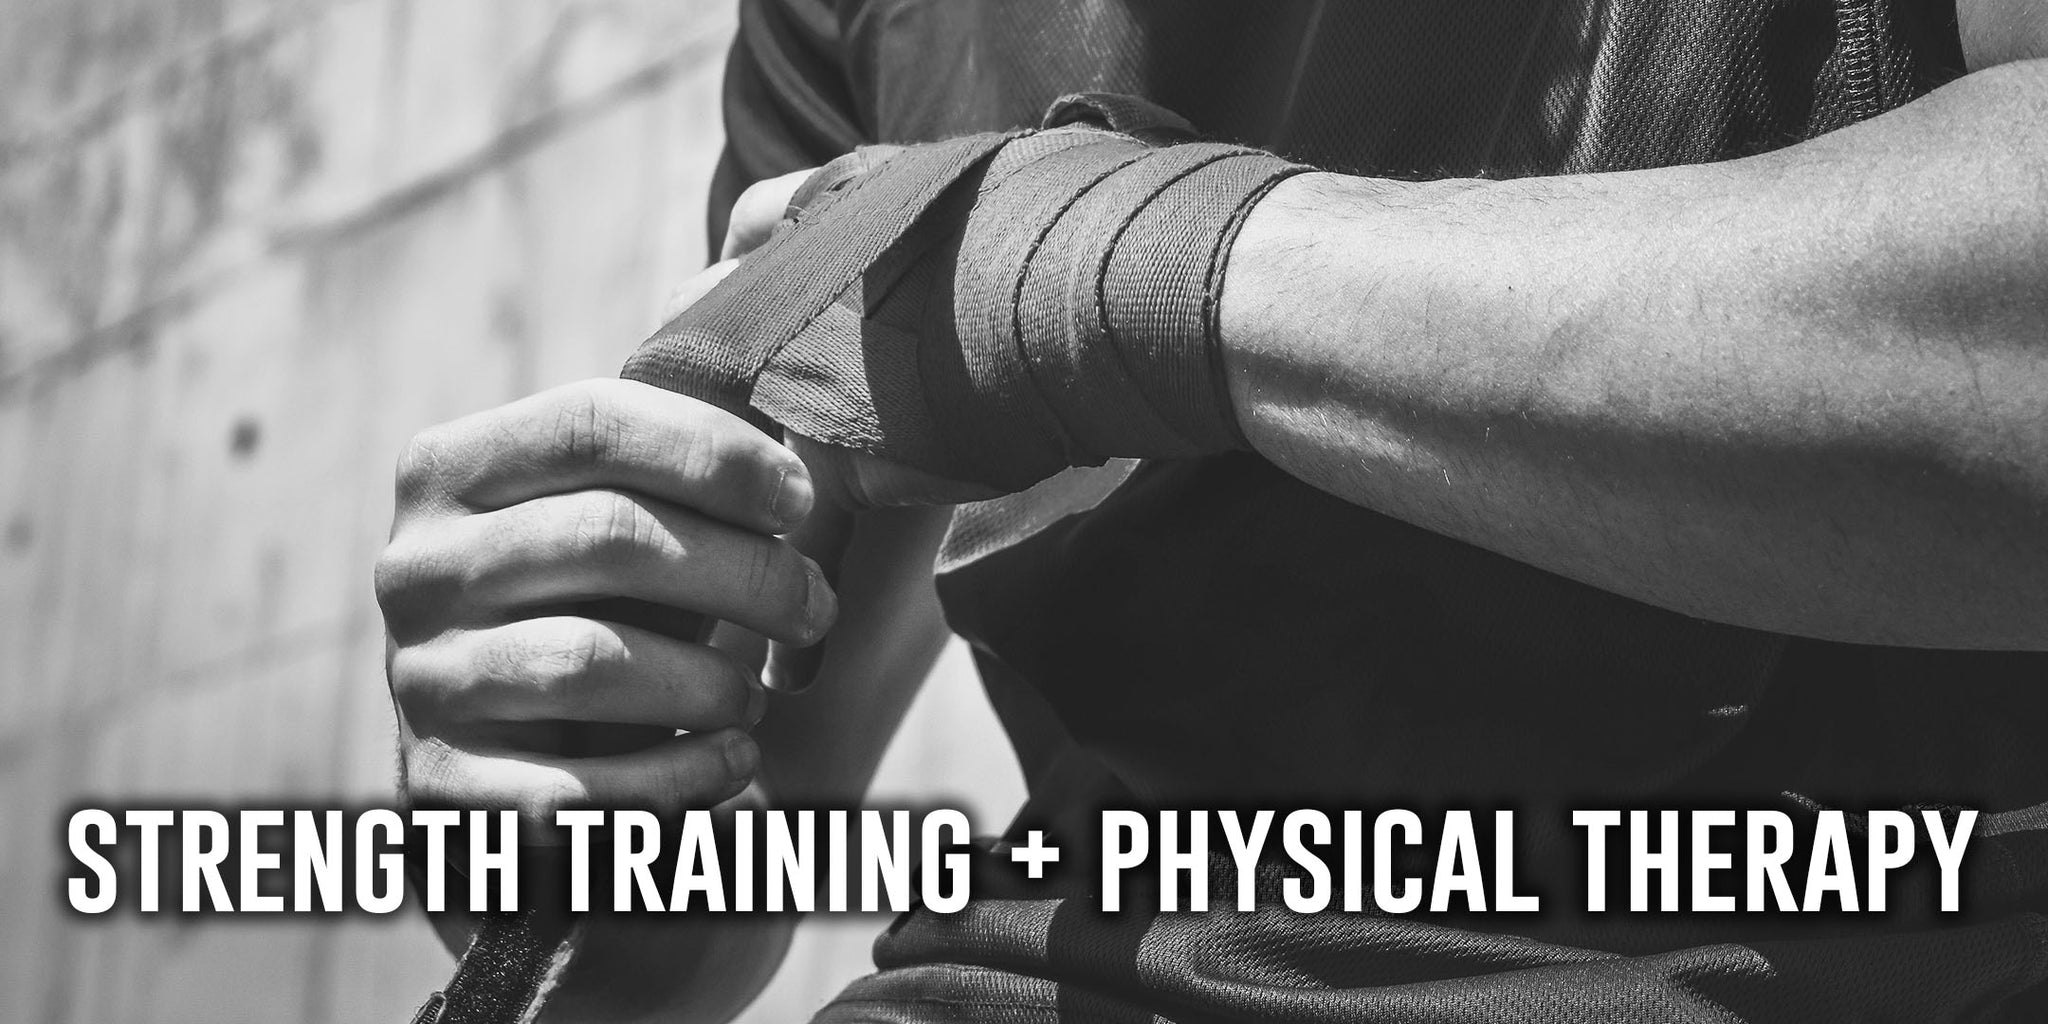 For Fast Recovery: Add Strength Training in your Physical Therapy